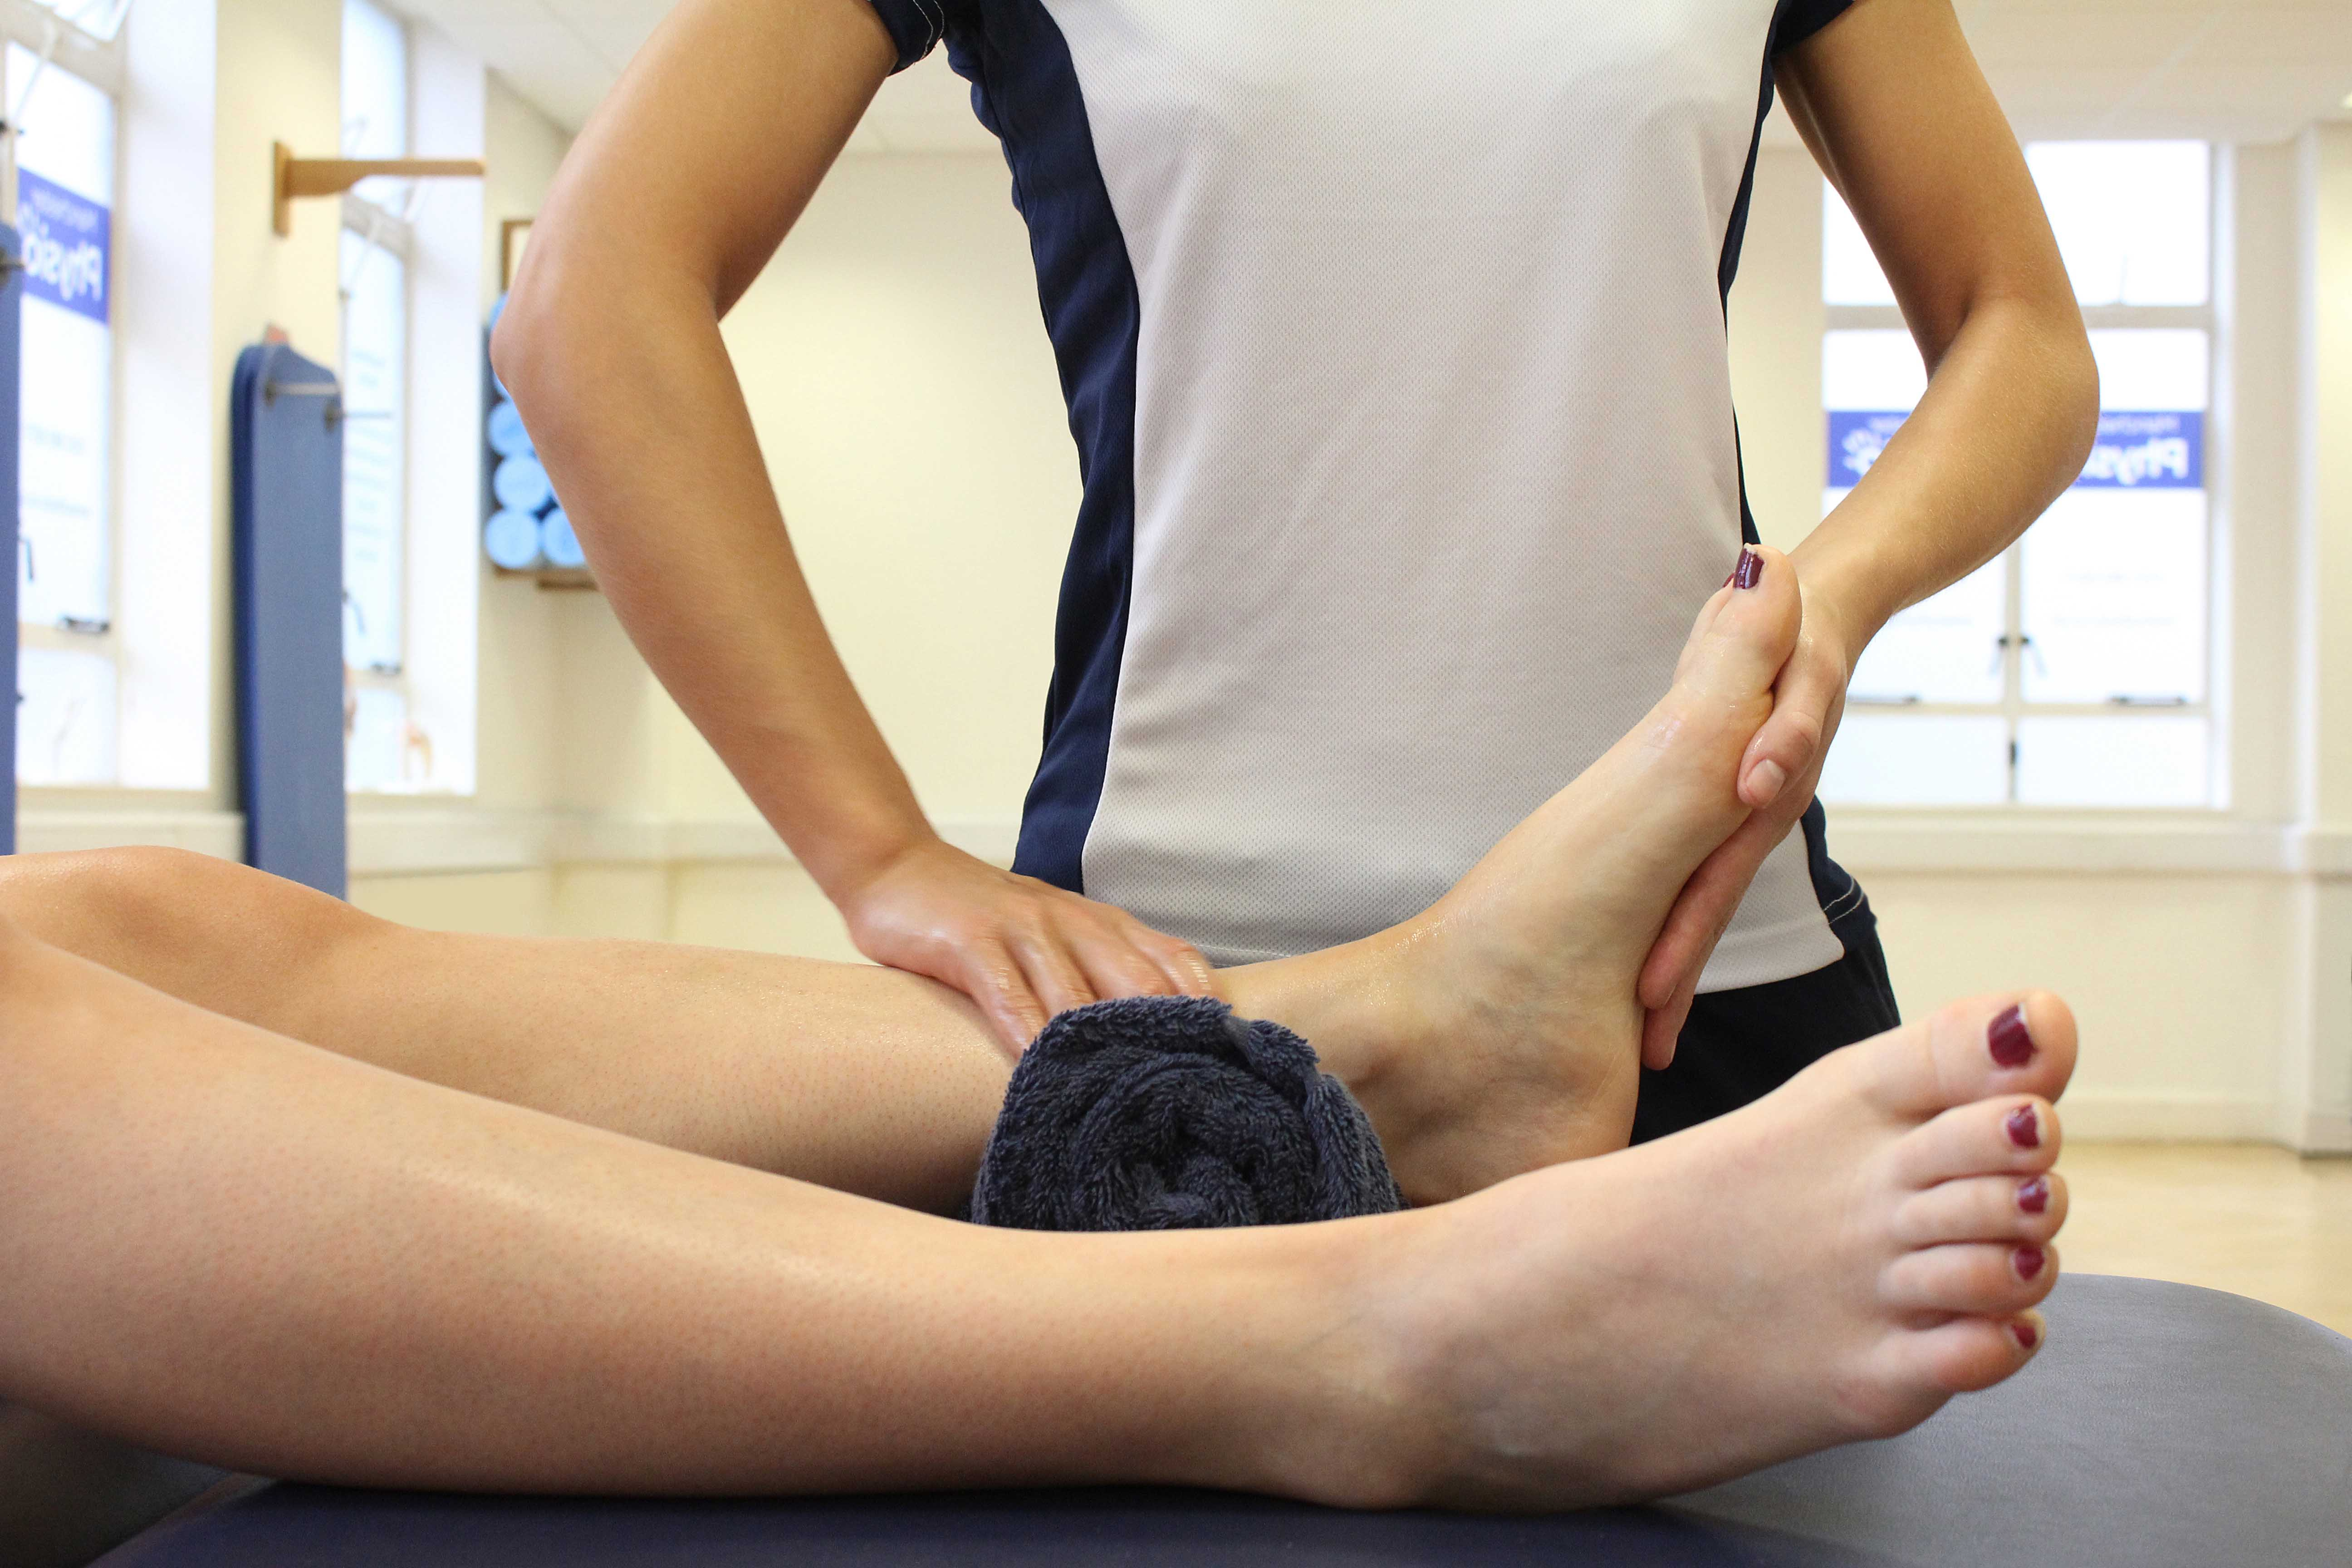 Ankle stability exercises supervised by an experienced physiotherapist